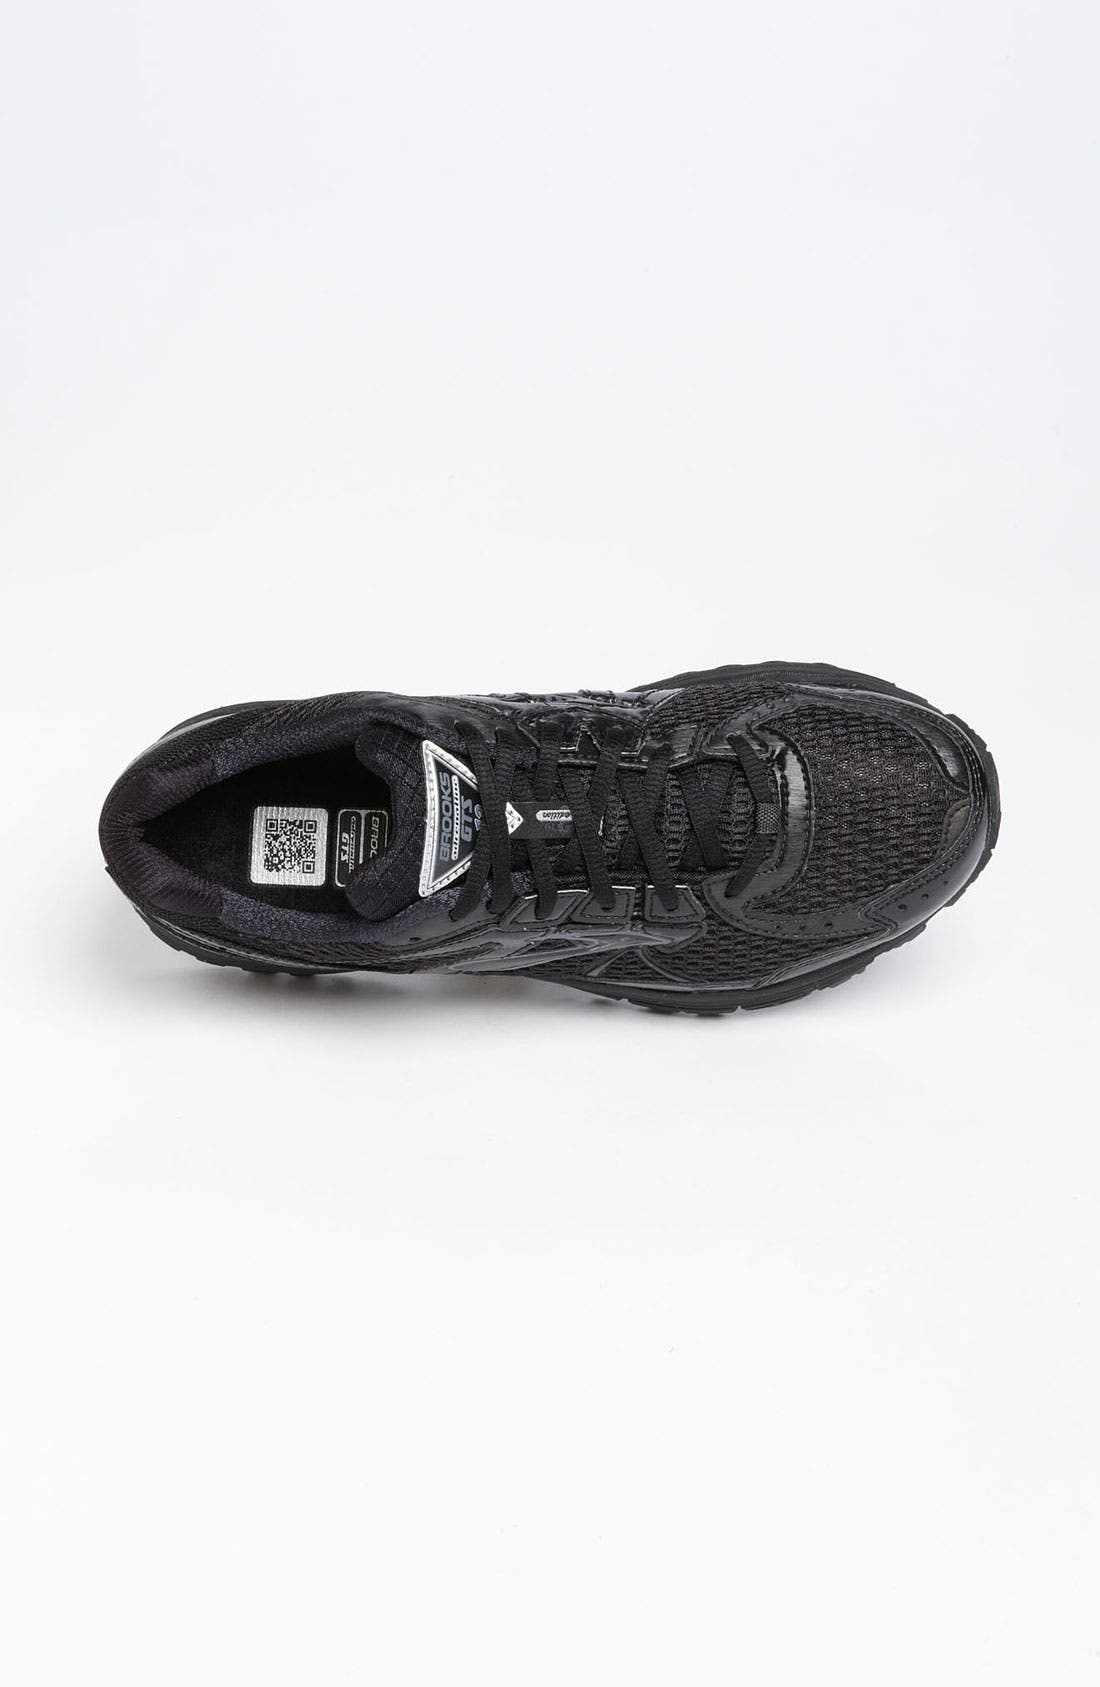 'Adrenaline GTS 13' Running Shoe,                             Alternate thumbnail 3, color,                             090